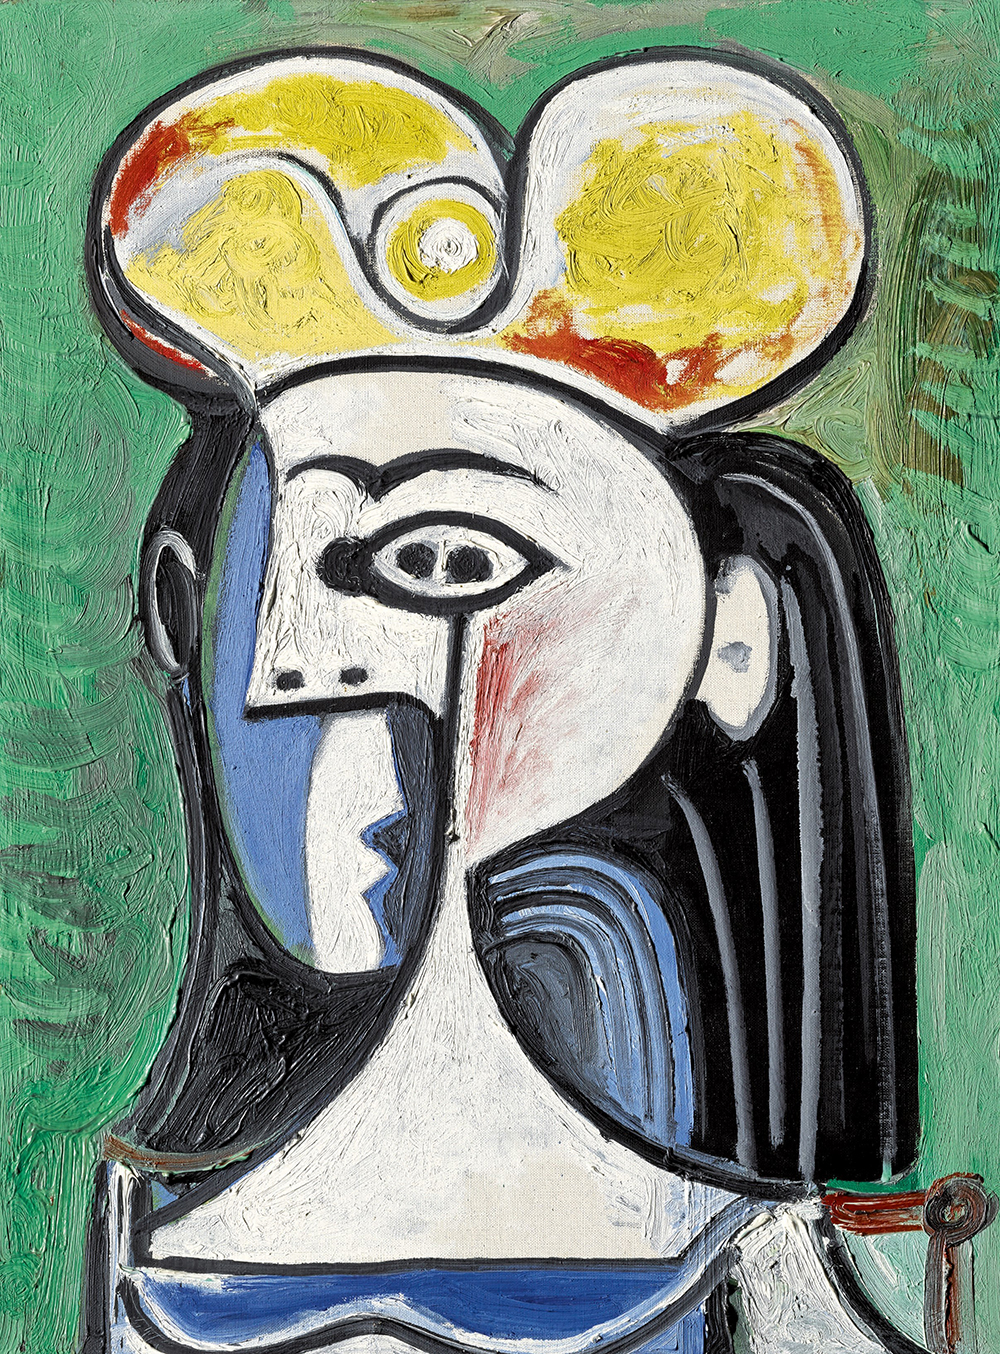 Picasso's Buste De Femme Assise To Sell For $12 Million